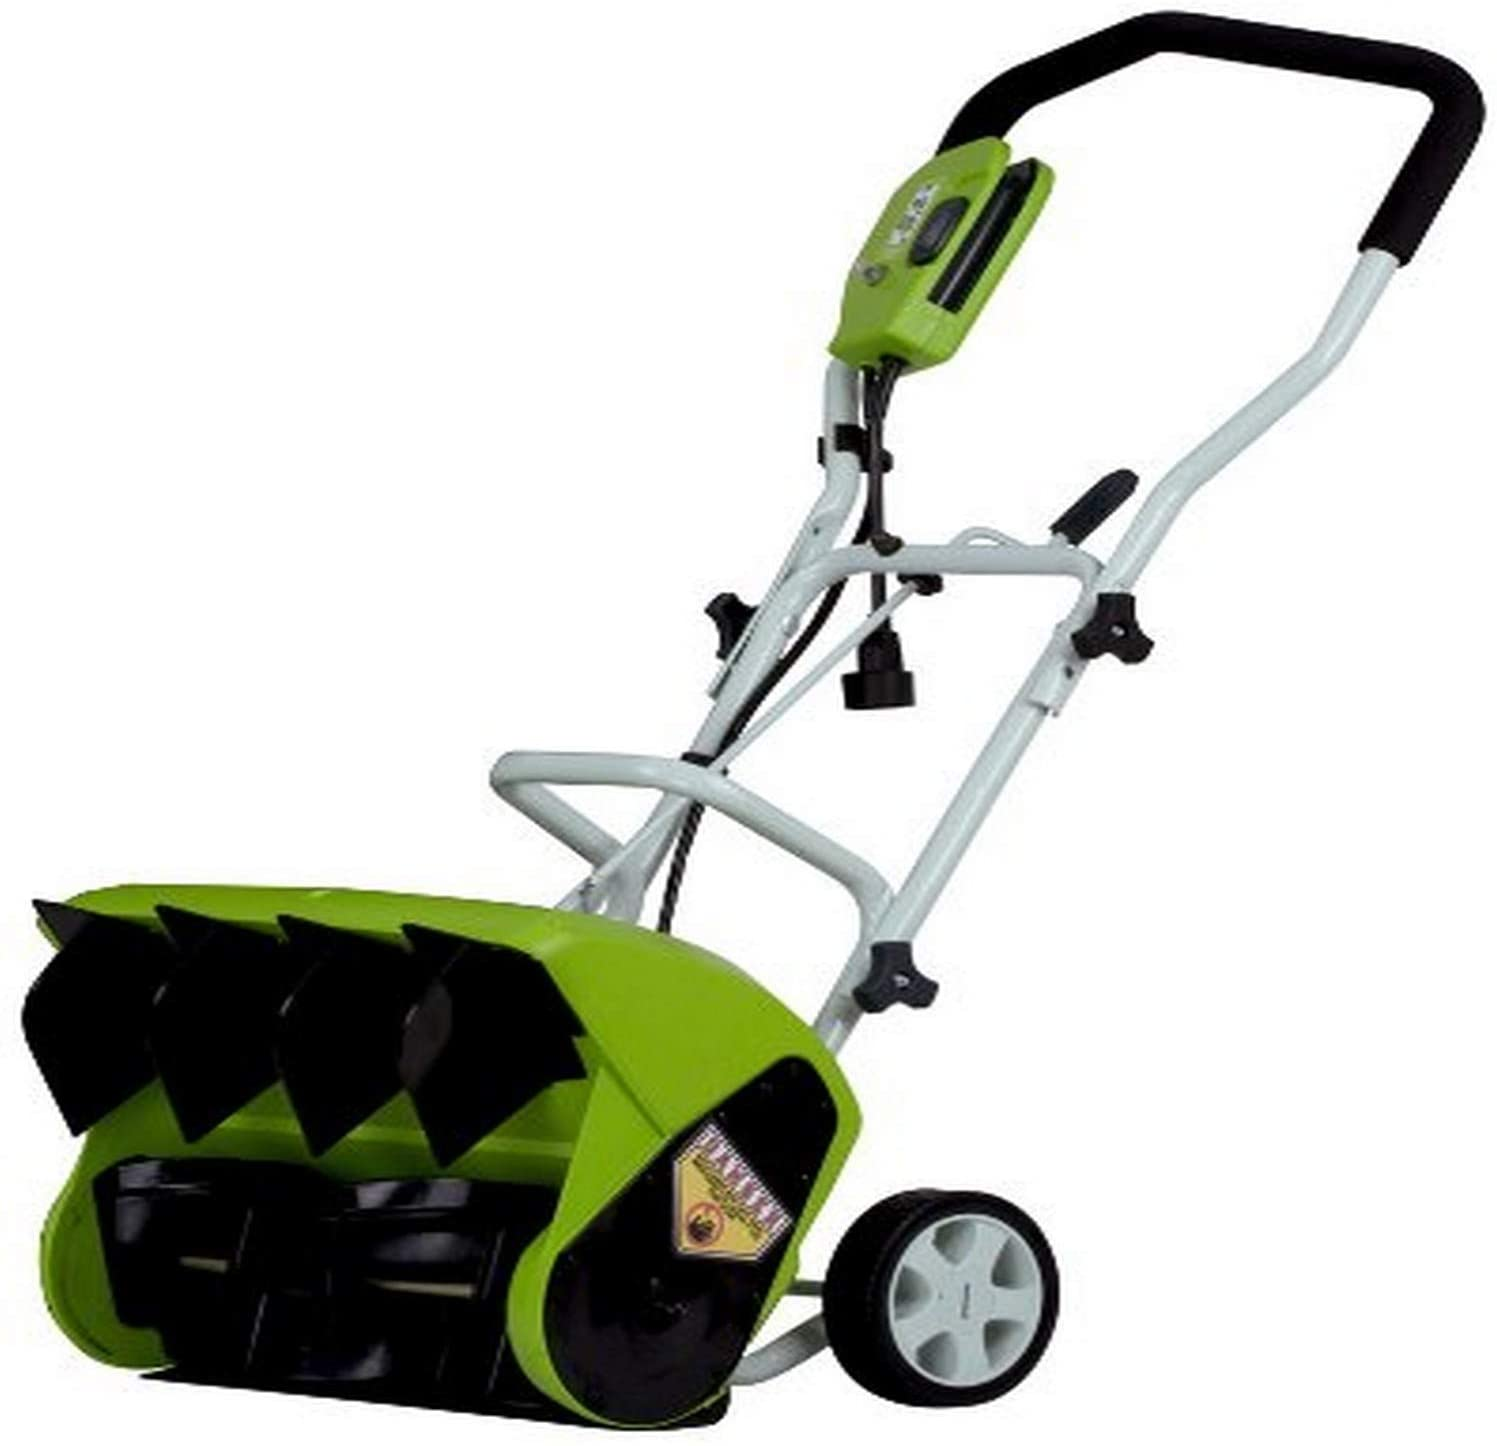 """Greenworks 26022 10 Amp 16"""" Corded Snow Thrower"""